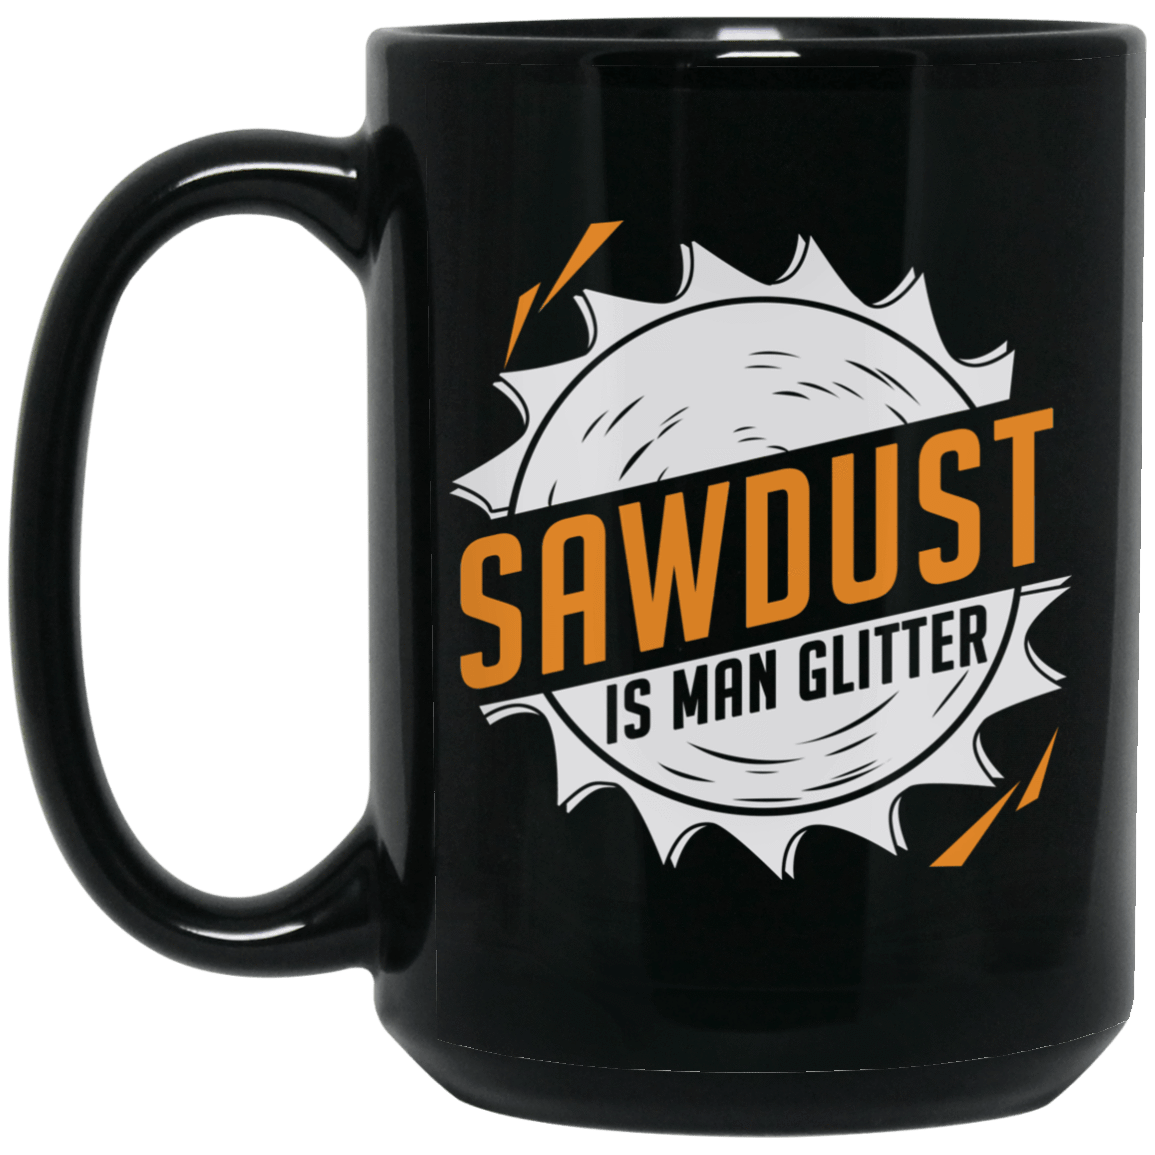 Sawdust Is Man Glitter Mug 1066-10182-73548637-49311 - Tee Ript